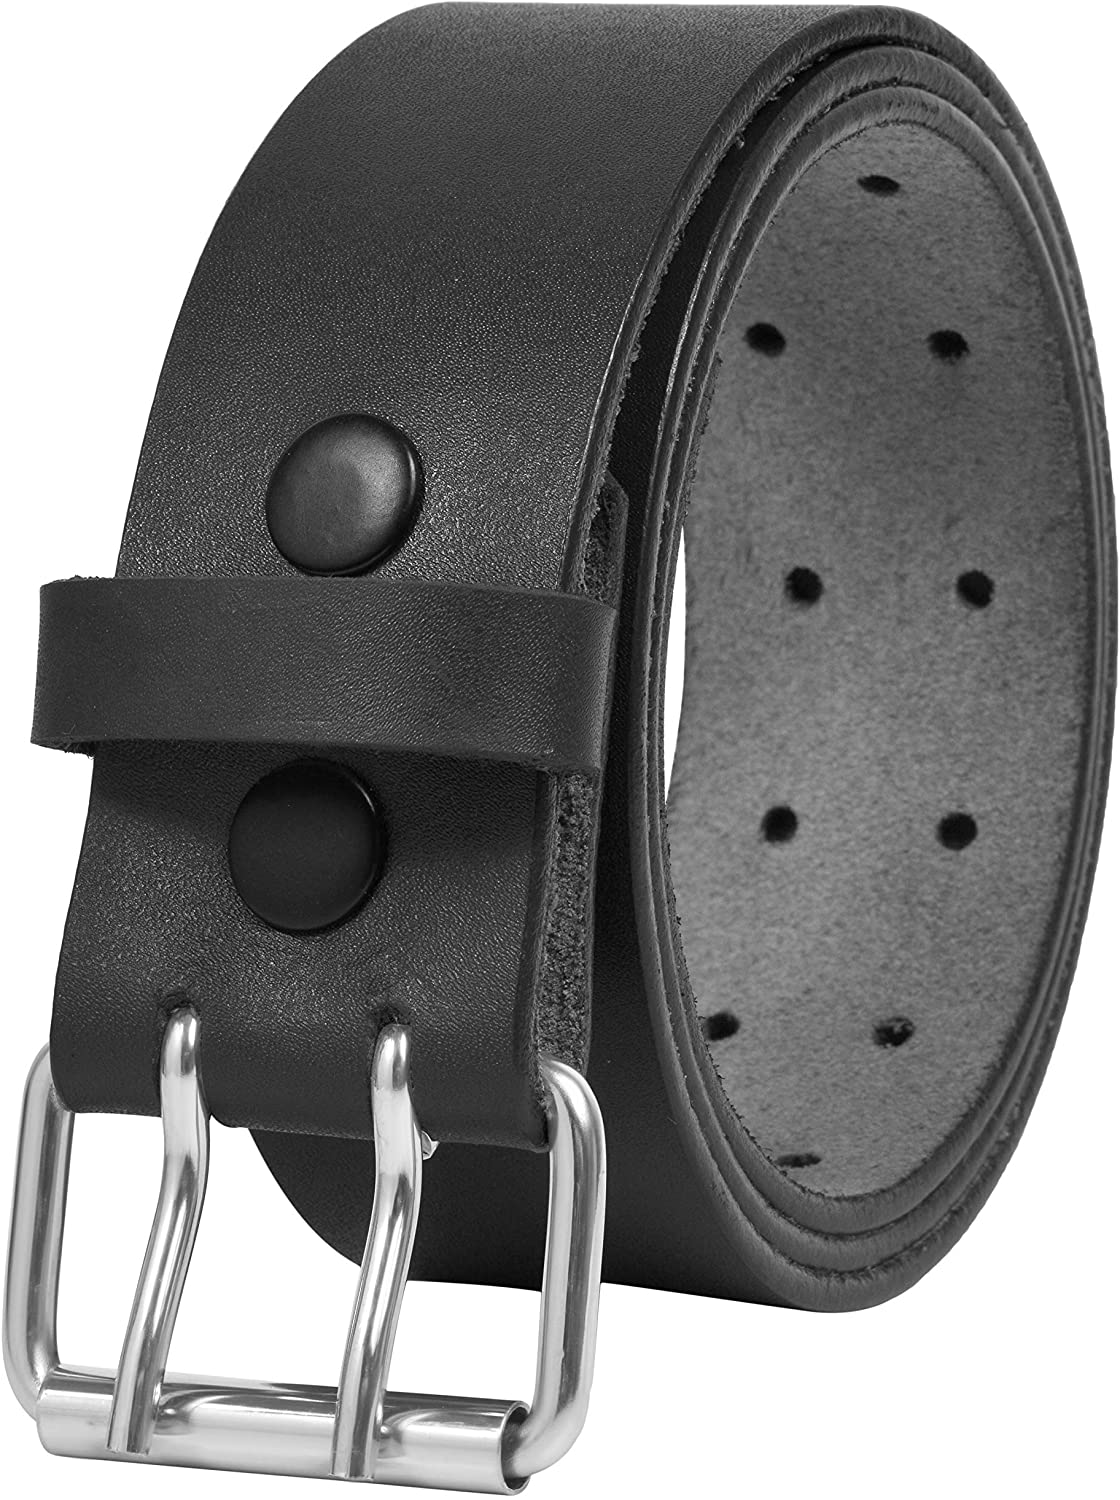 Leather Belts Max Max 46% OFF 61% OFF for Men Heavy Duty Double Cas Wide 1.75 Prong Inch